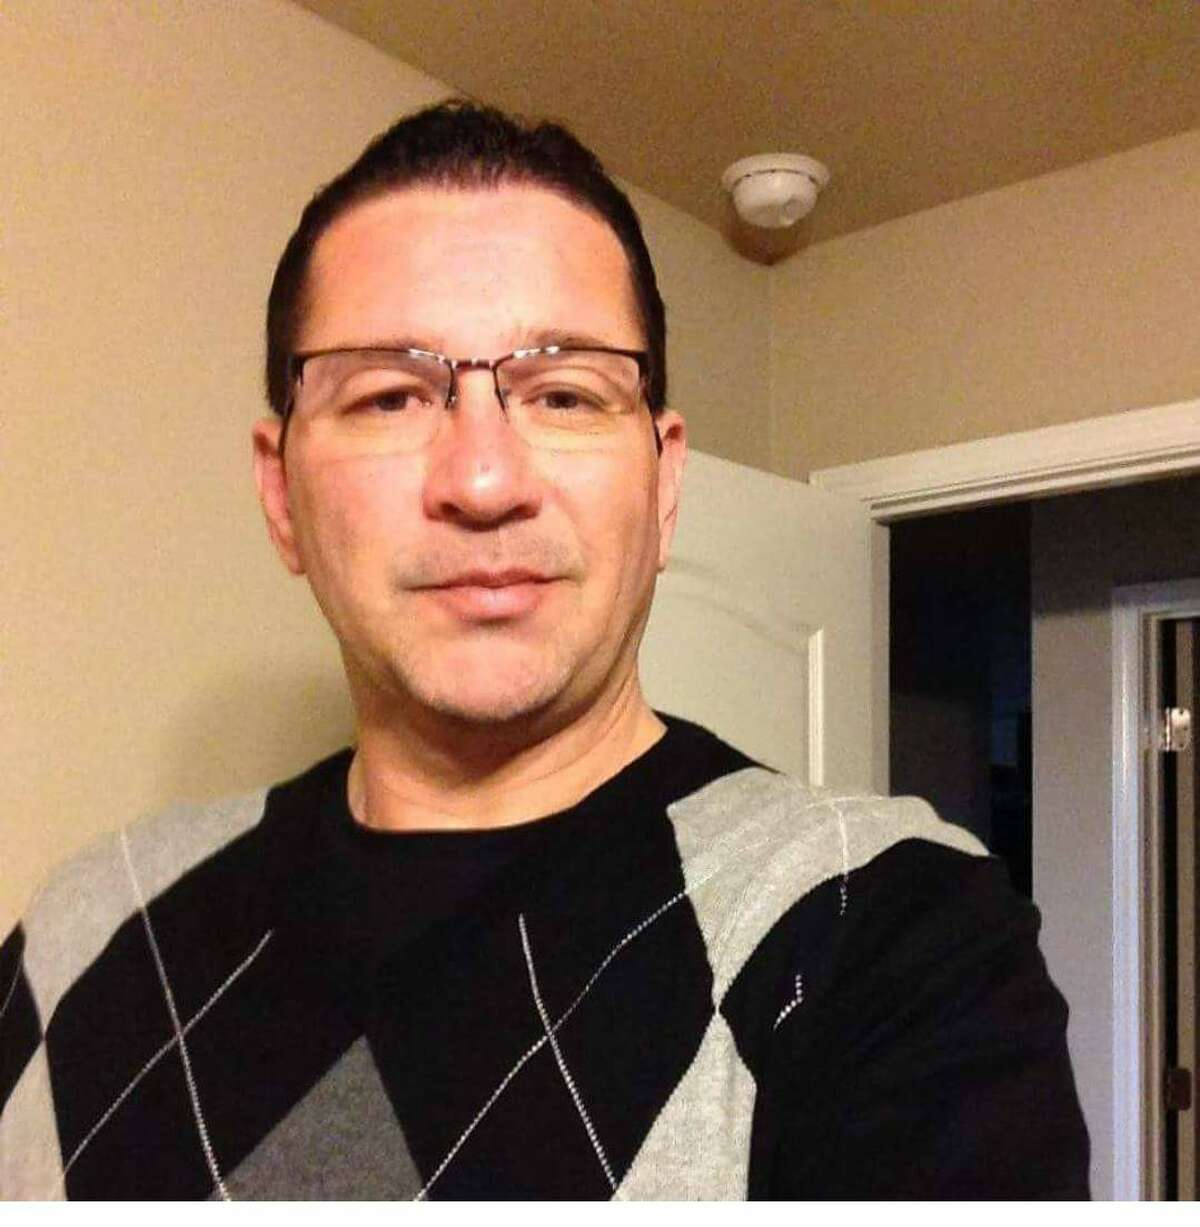 Rolando Ramos, 49, was found dead at his home on Tuesday evening from multiple stab wounds.